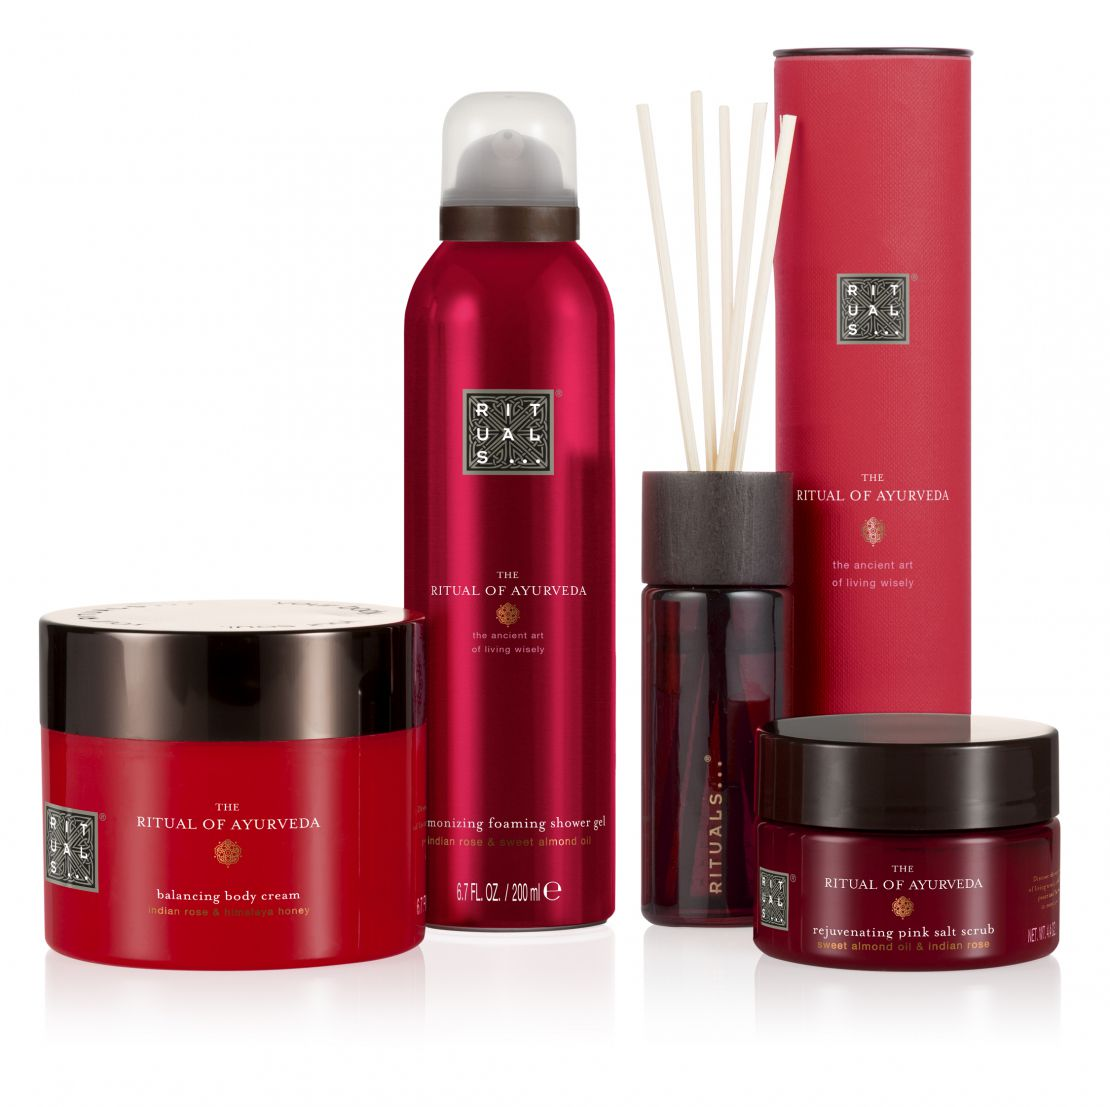 Rituals ayurveda collection